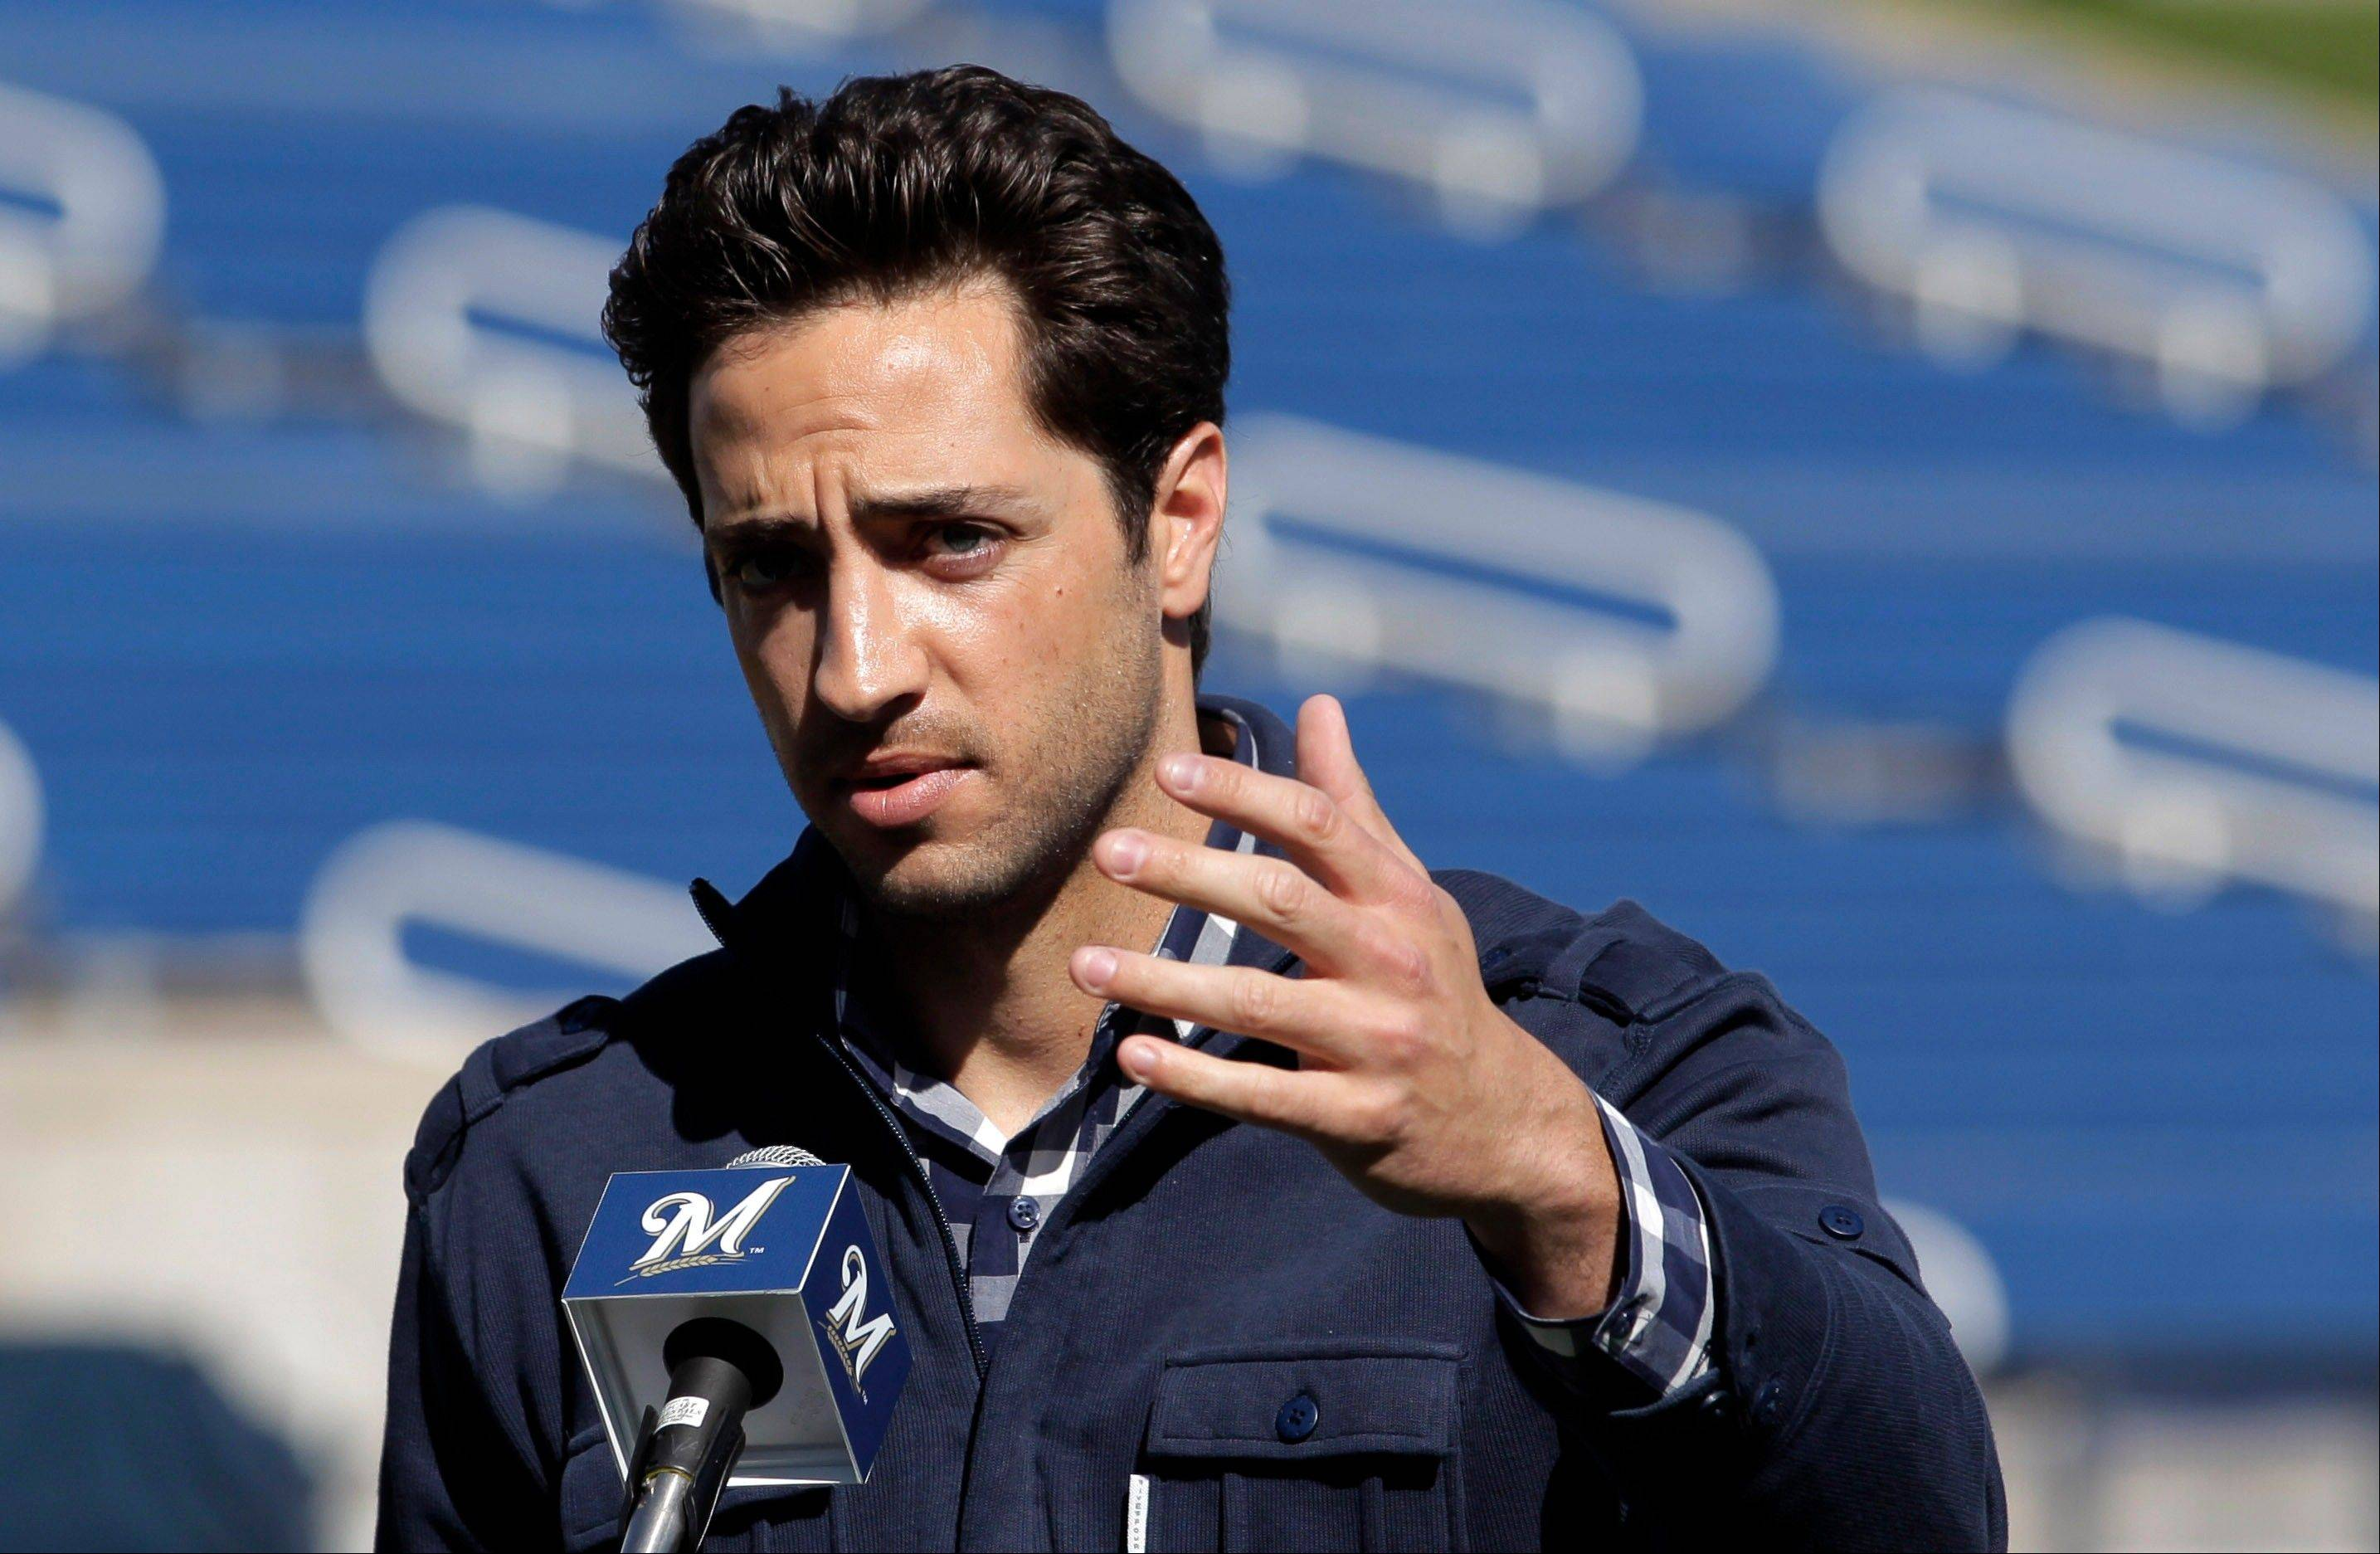 FILE - In this Feb. 24, 2012 file photo, Milwaukee Brewers' Ryan Braun speaks during a news conference at baseball spring training in Phoenix. The 2011 National League MVP was suspended without pay for the rest of the season and the postseason Monday, July 22, 2013, the start of sanctions involving players reportedly tied to a Florida clinic accused of distributing performance-enhancing drugs.